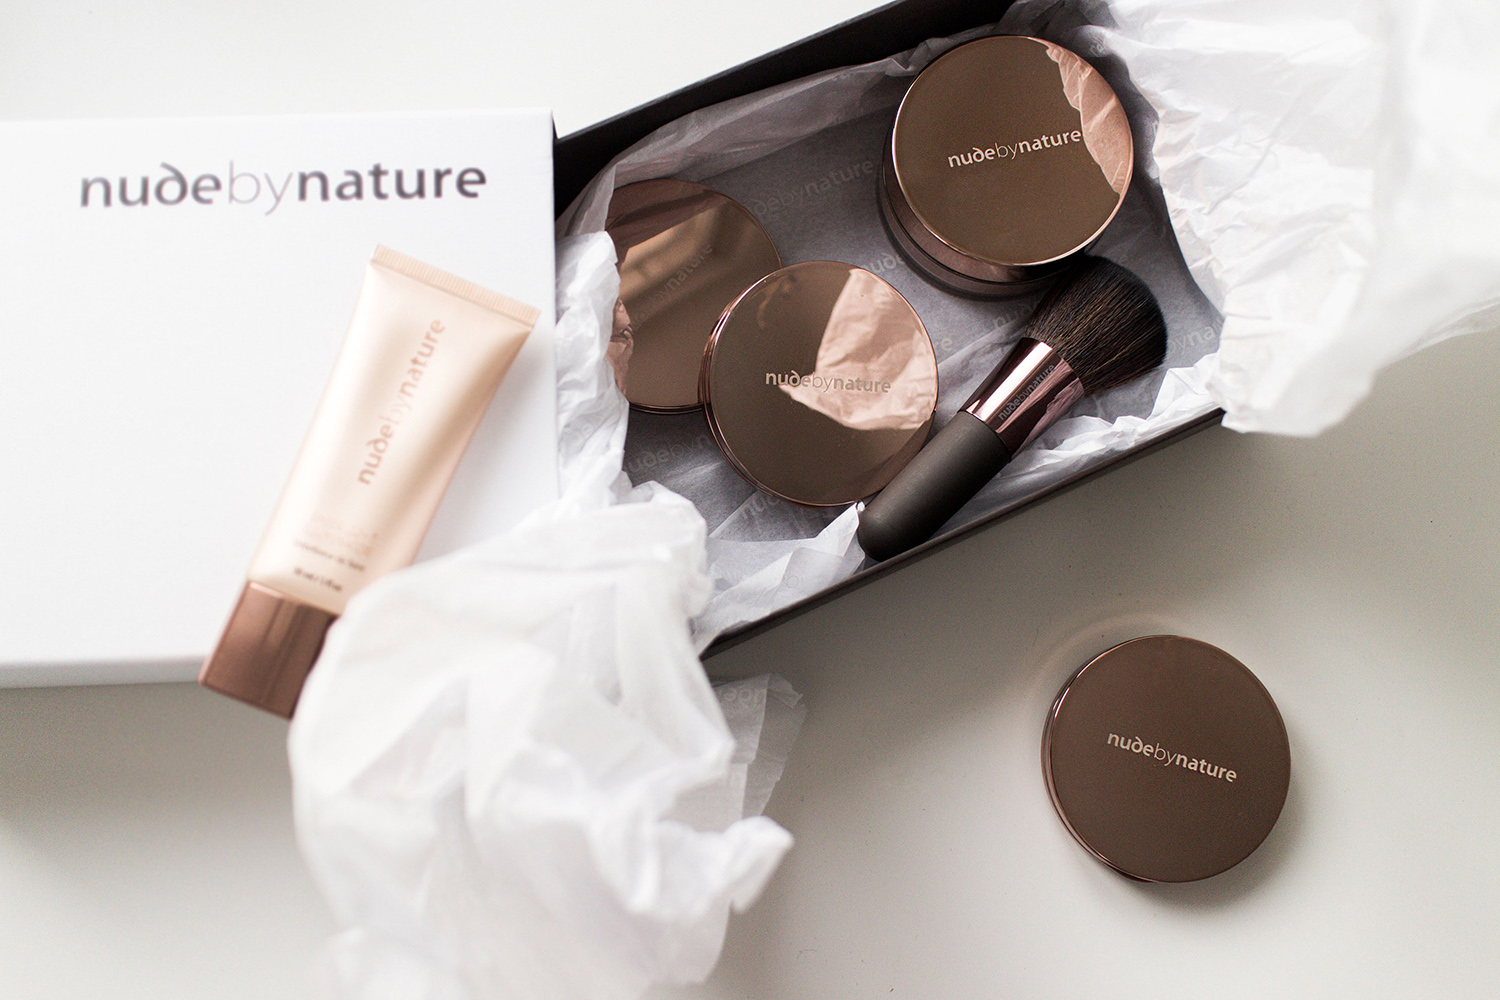 Nude by Nature Christmas Collection Set Review